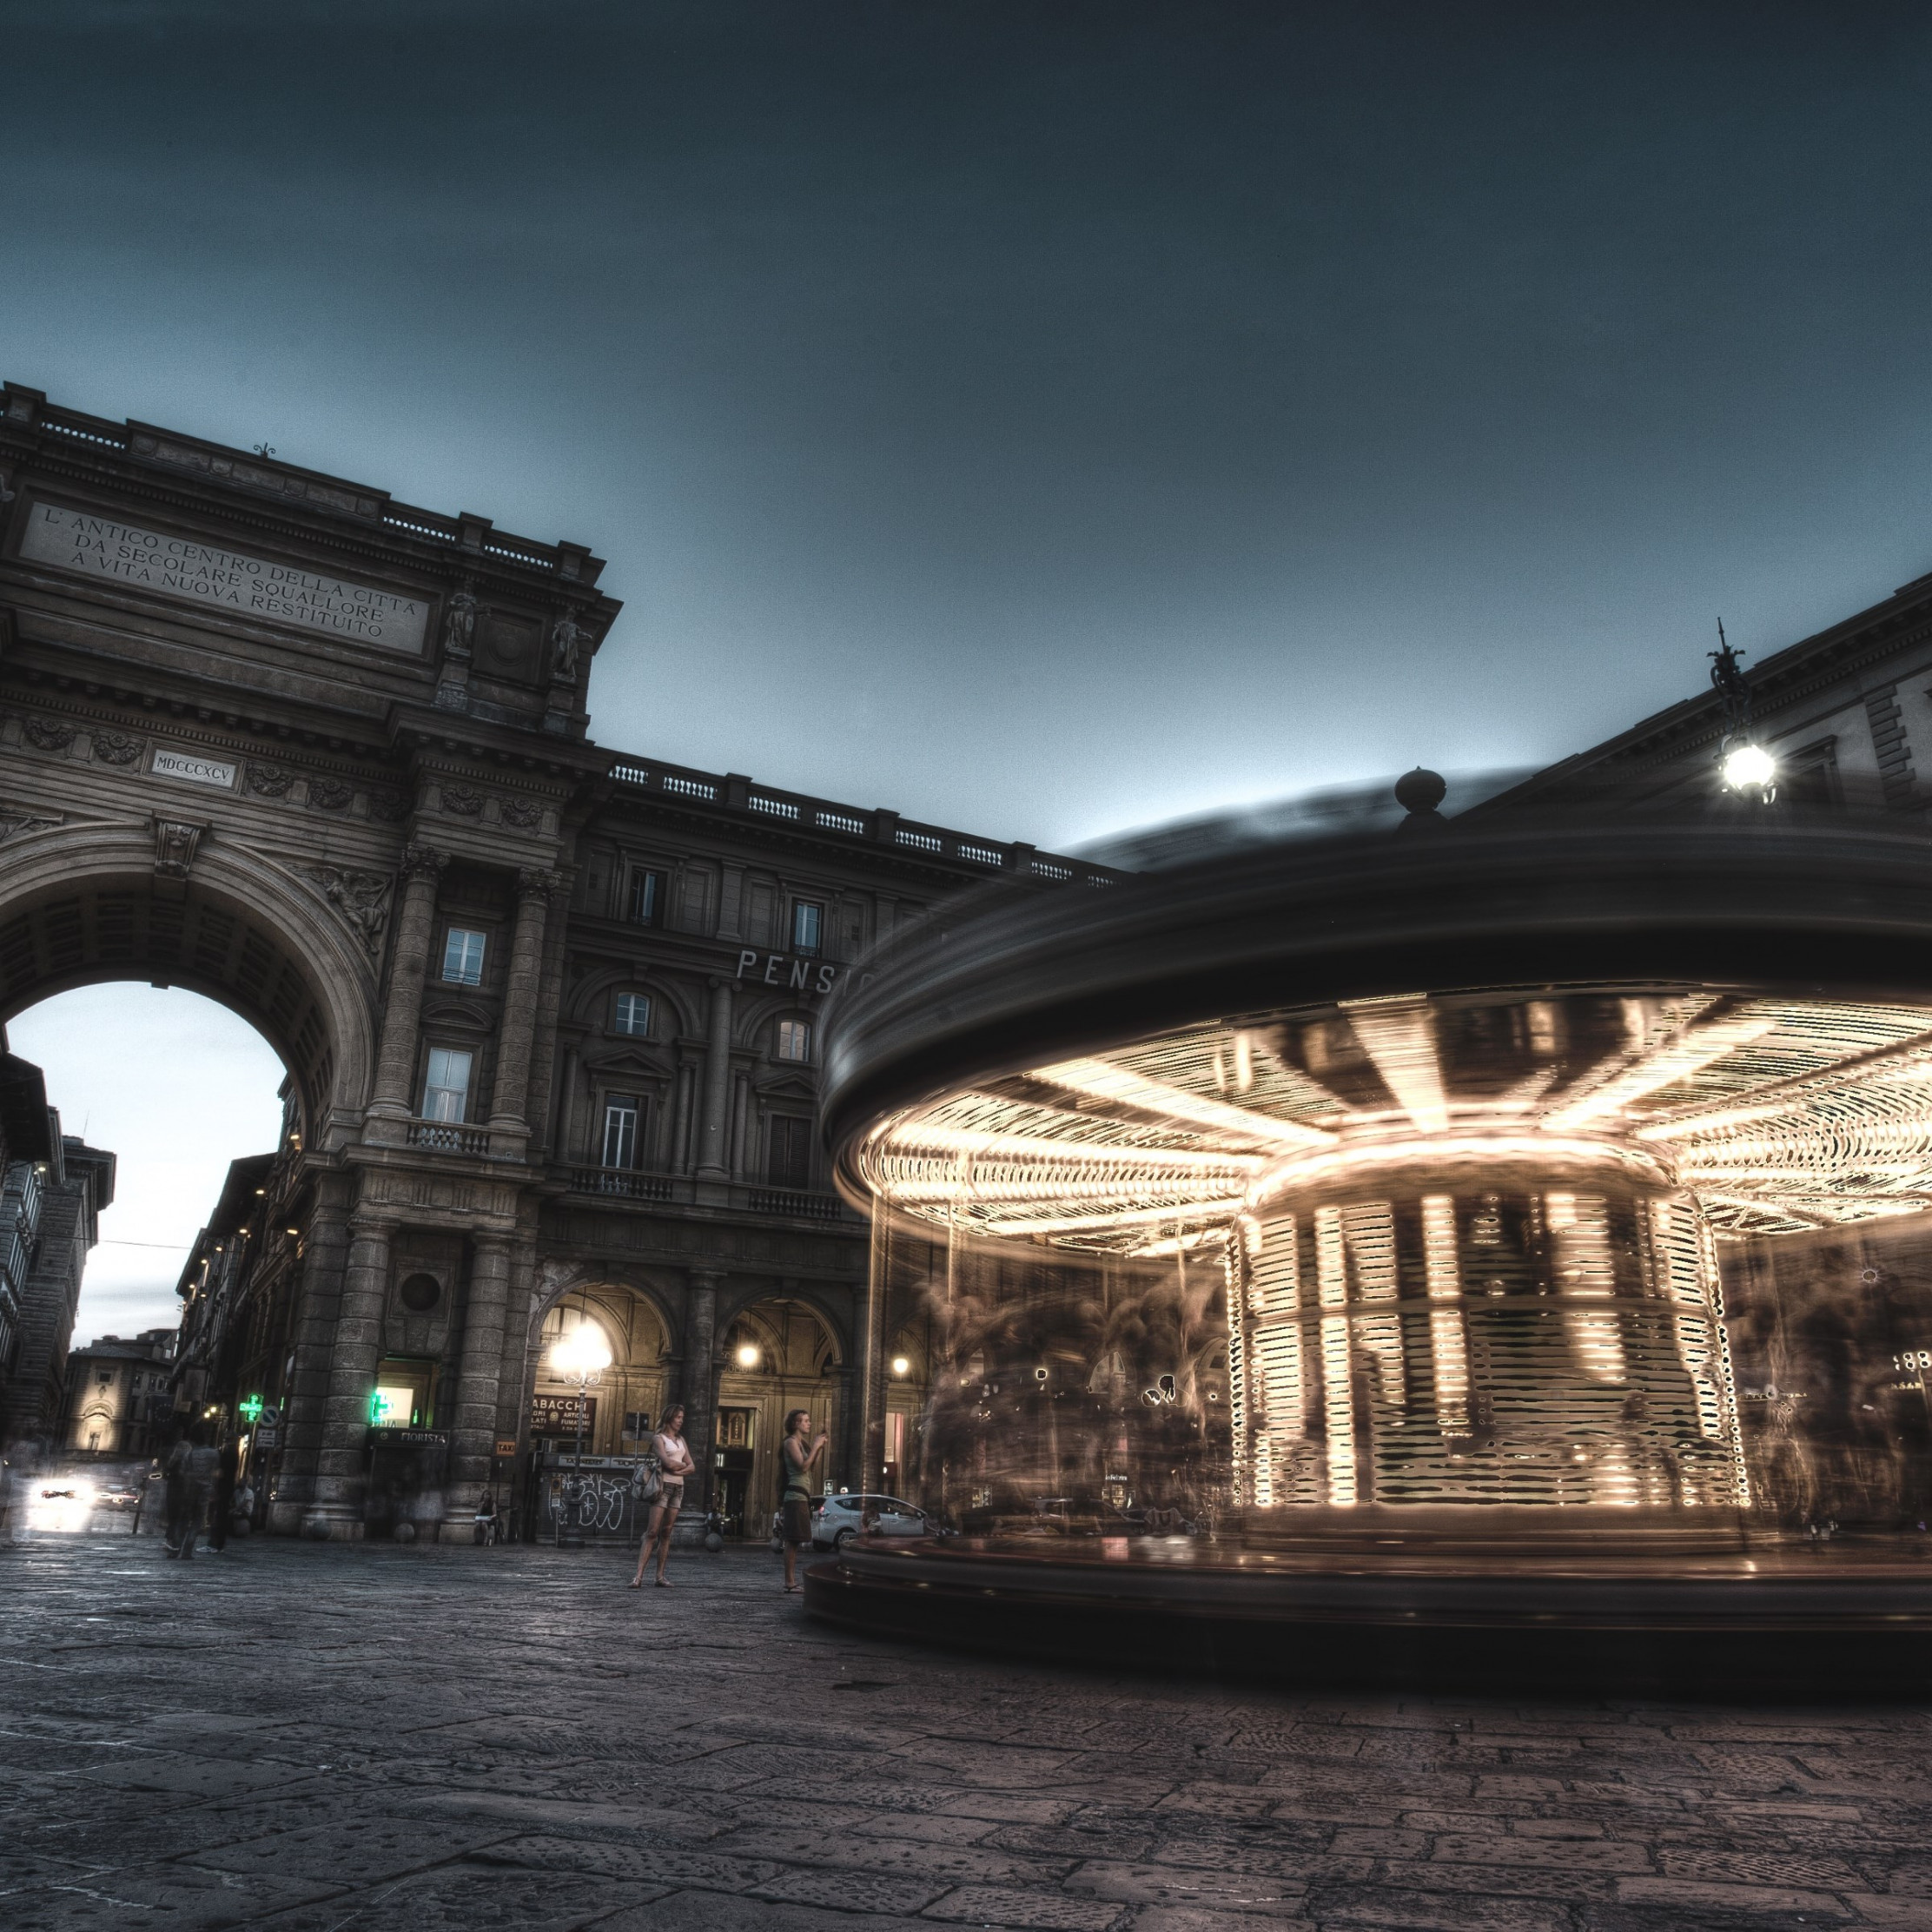 Carousel, people and buildings from Florence wallpaper 2224x2224